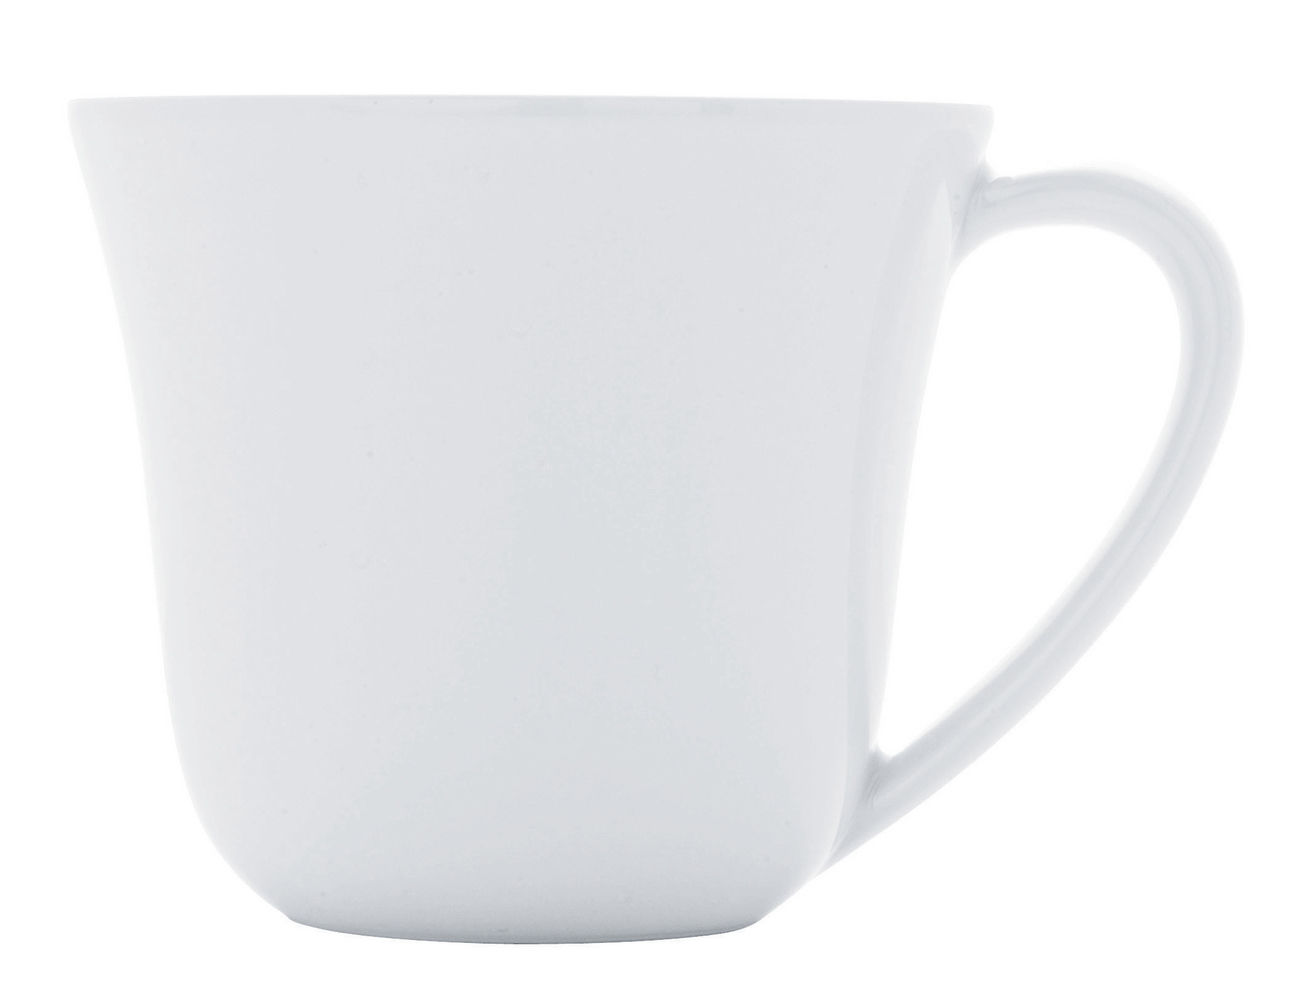 Arts de la table - Tasses et mugs - Tasse à café Ku / 20 cl - Alessi - Tasse / Blanc - Porcelaine